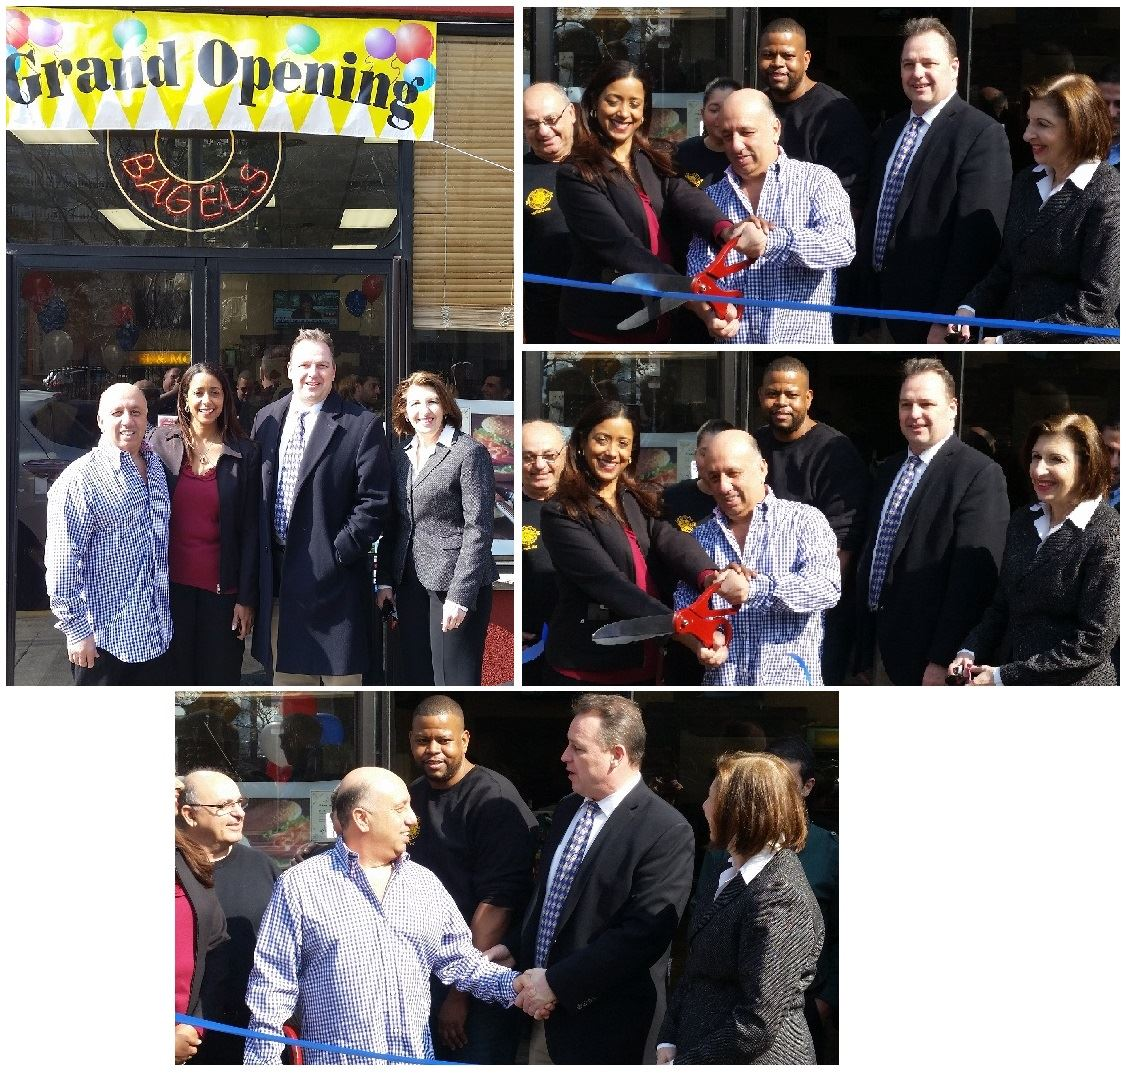 Mayor ribbon cutting ceremony at Bagels n More